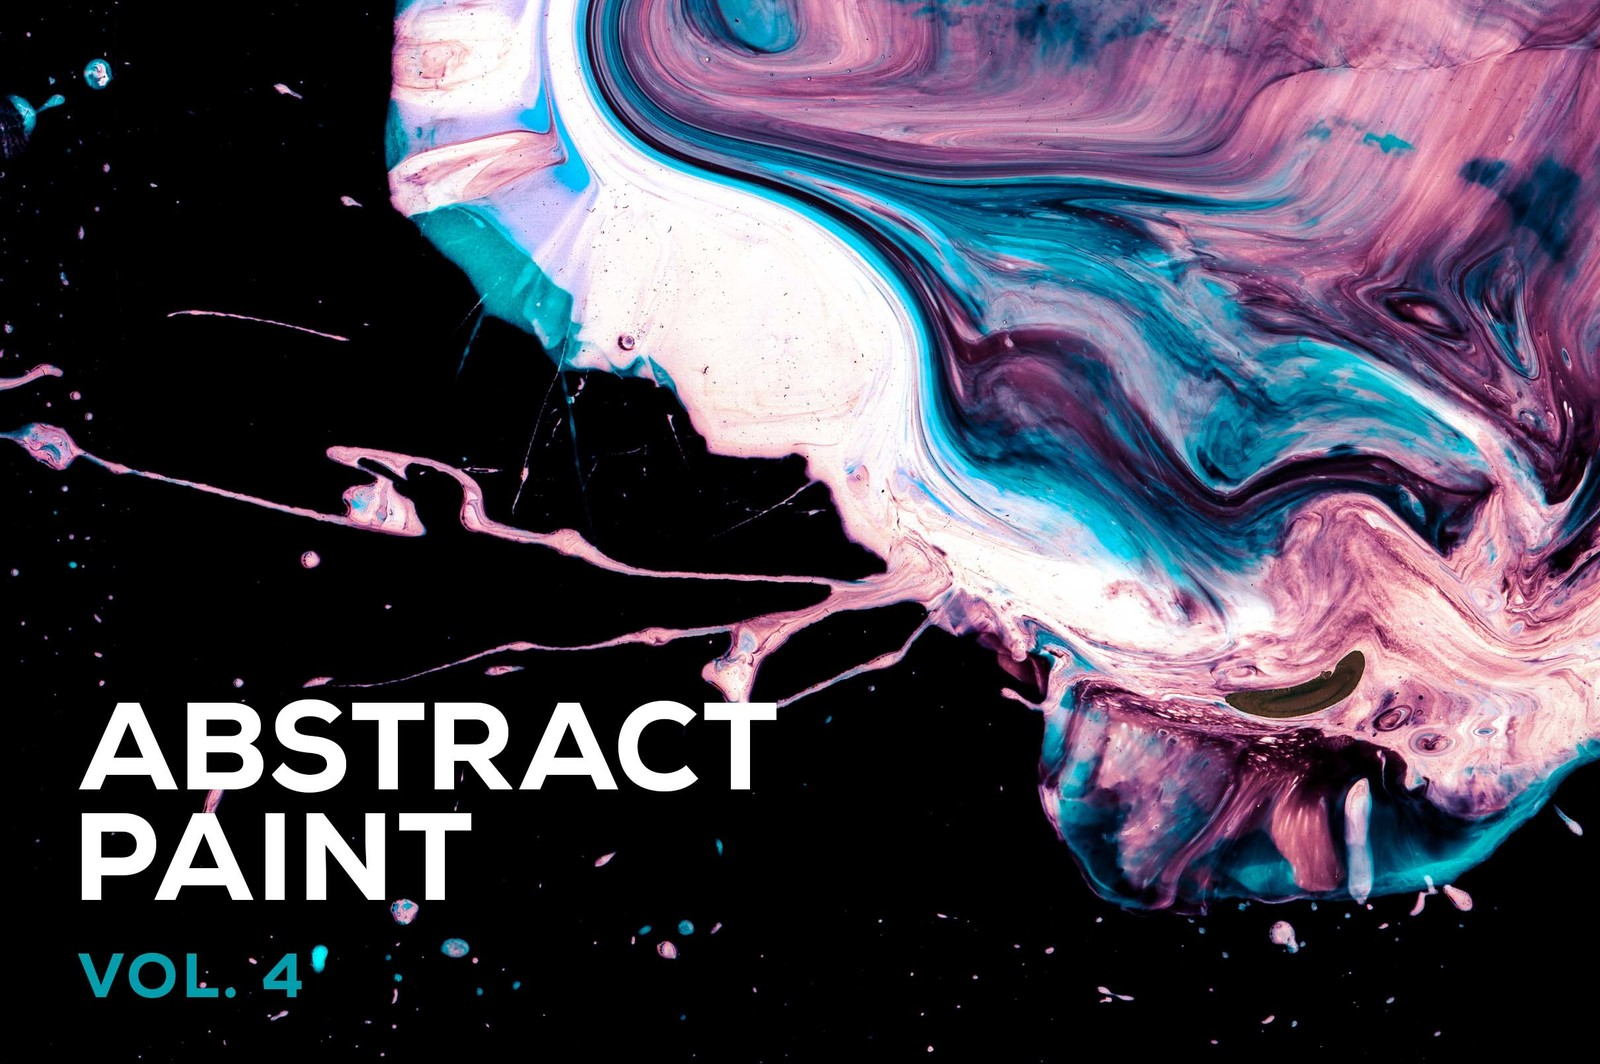 Abstract Paint, Vol. 4